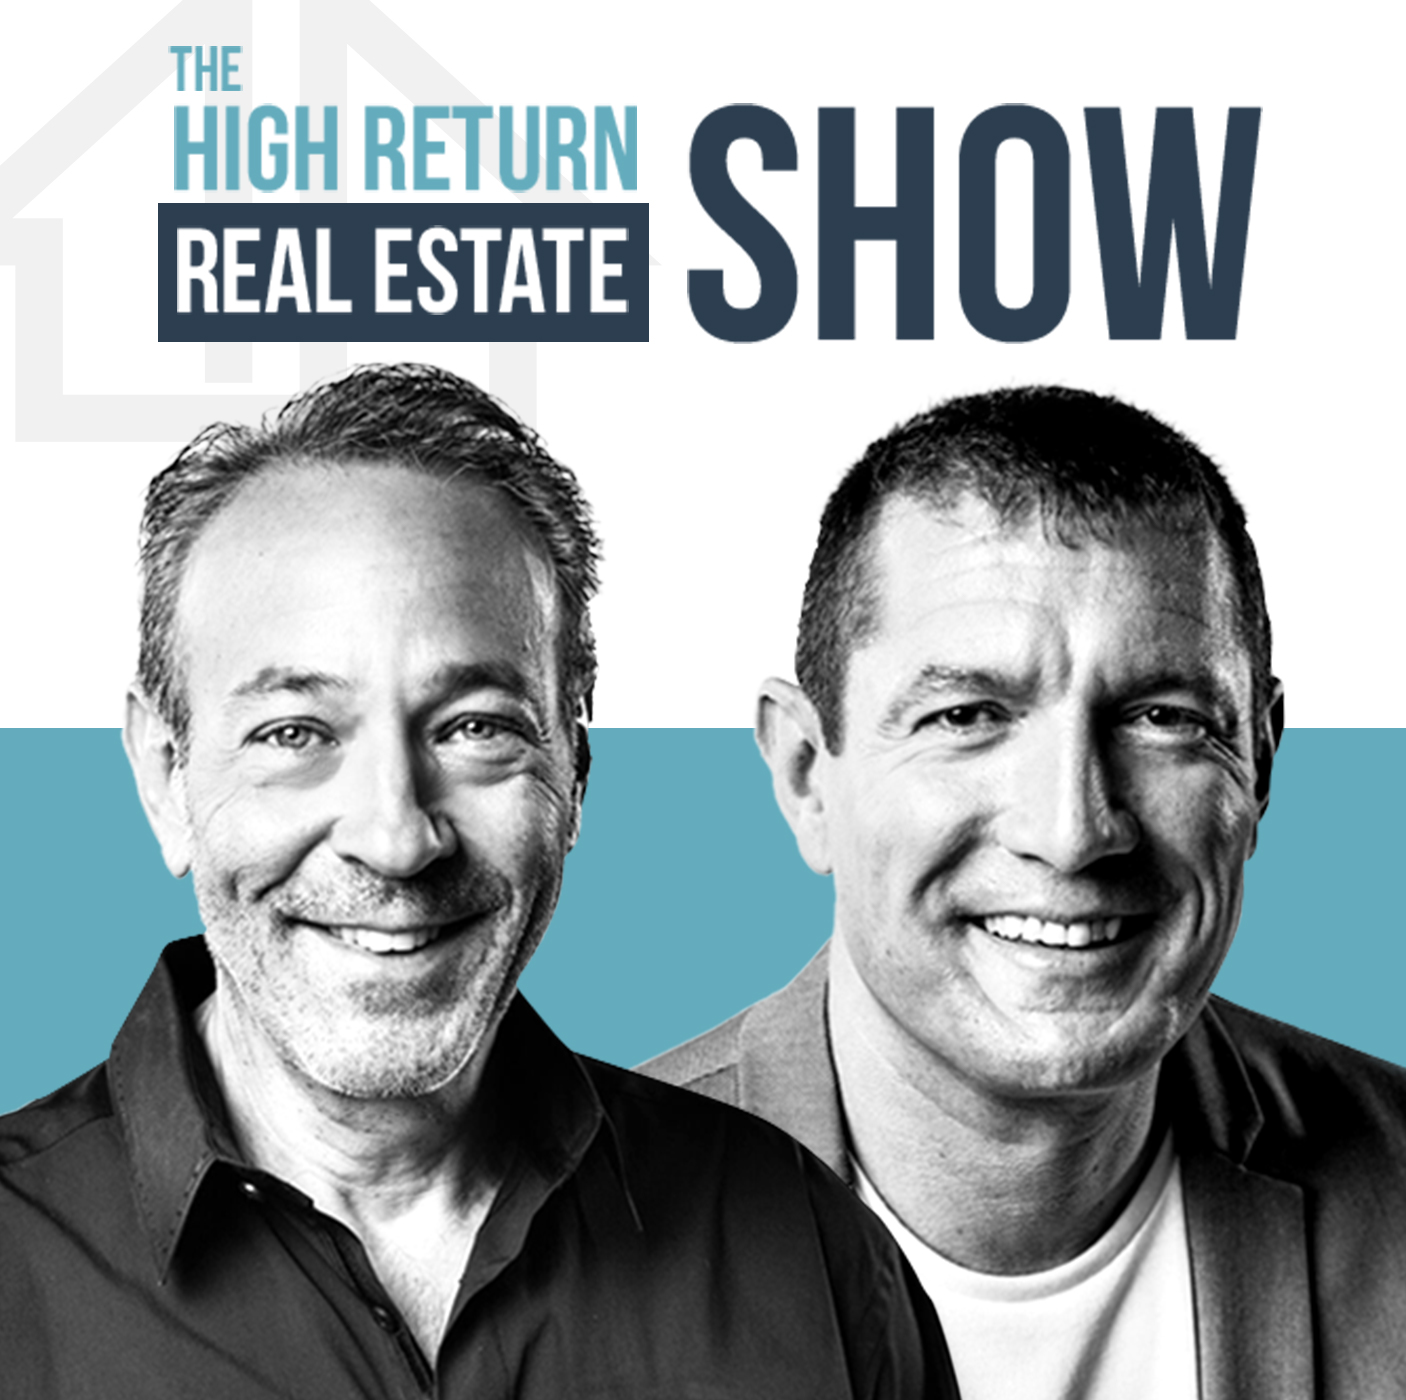 Episode #63 - Treat Your Investing Like A Business For Maximum Profitability With Josh Patrick show art